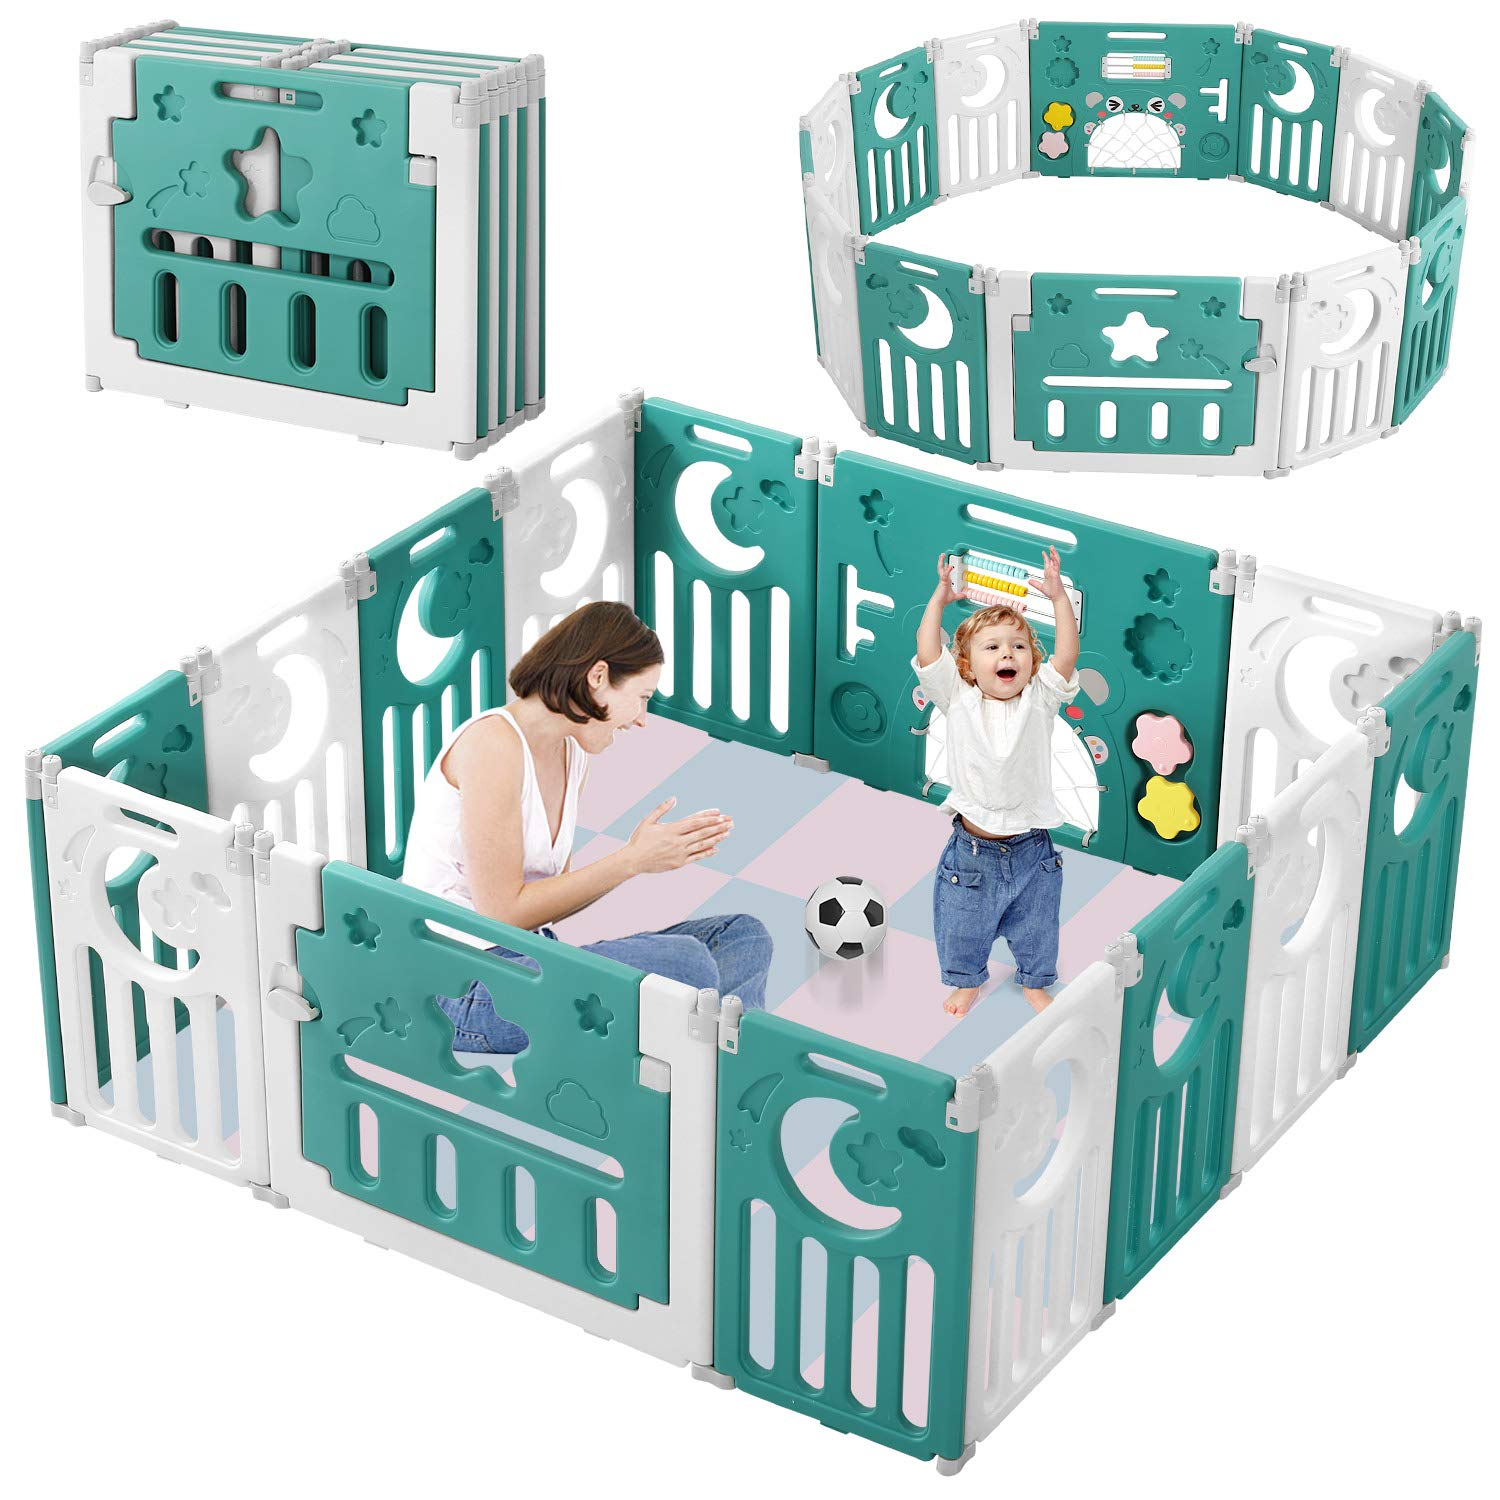 Baby Playpen, Dripex Upgrade Foldable Kids Activity Centre Safety Play Yard Home Indoor Outdoor Baby Fence Play Pen NO Gaps with Gate for Baby Boys Girls Toddlers (14 Panel, Neutral Green + White)